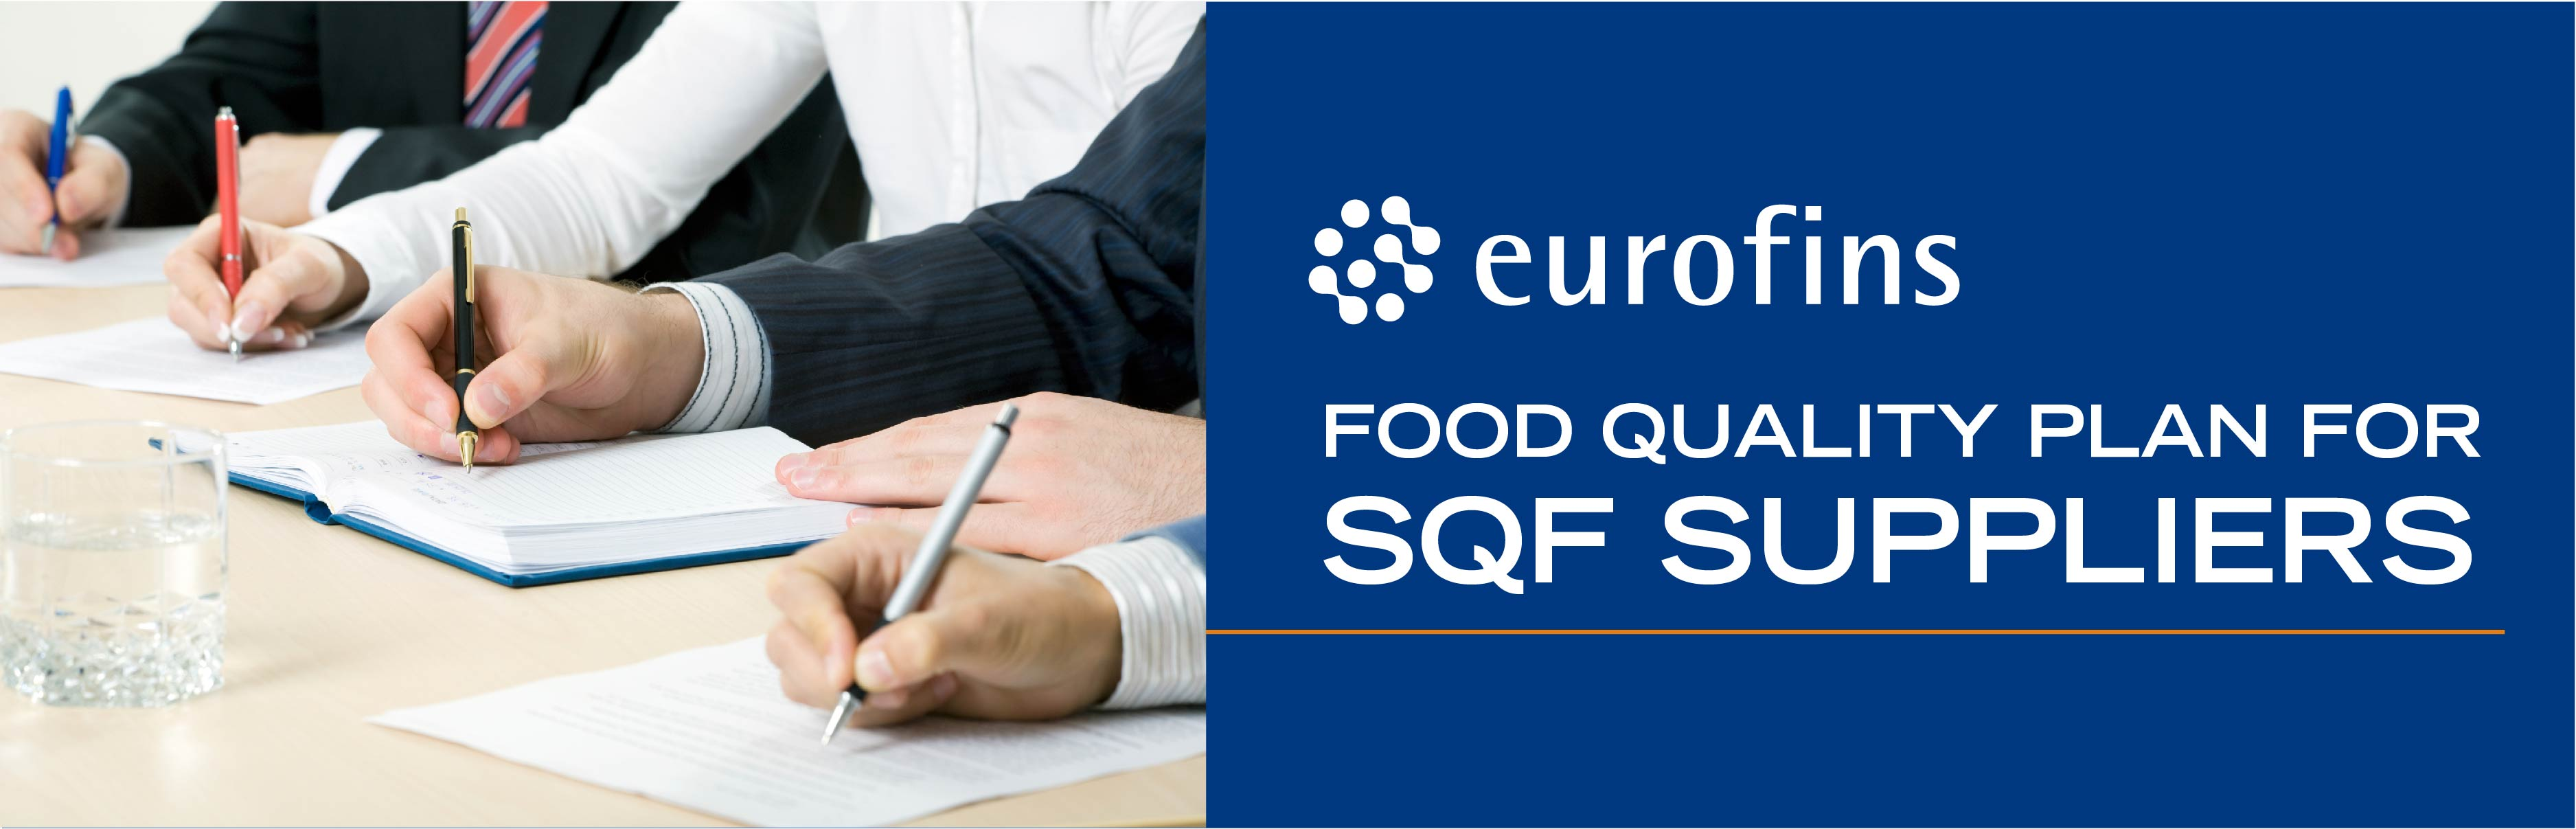 Food Quality Plans for SQF Suppliers